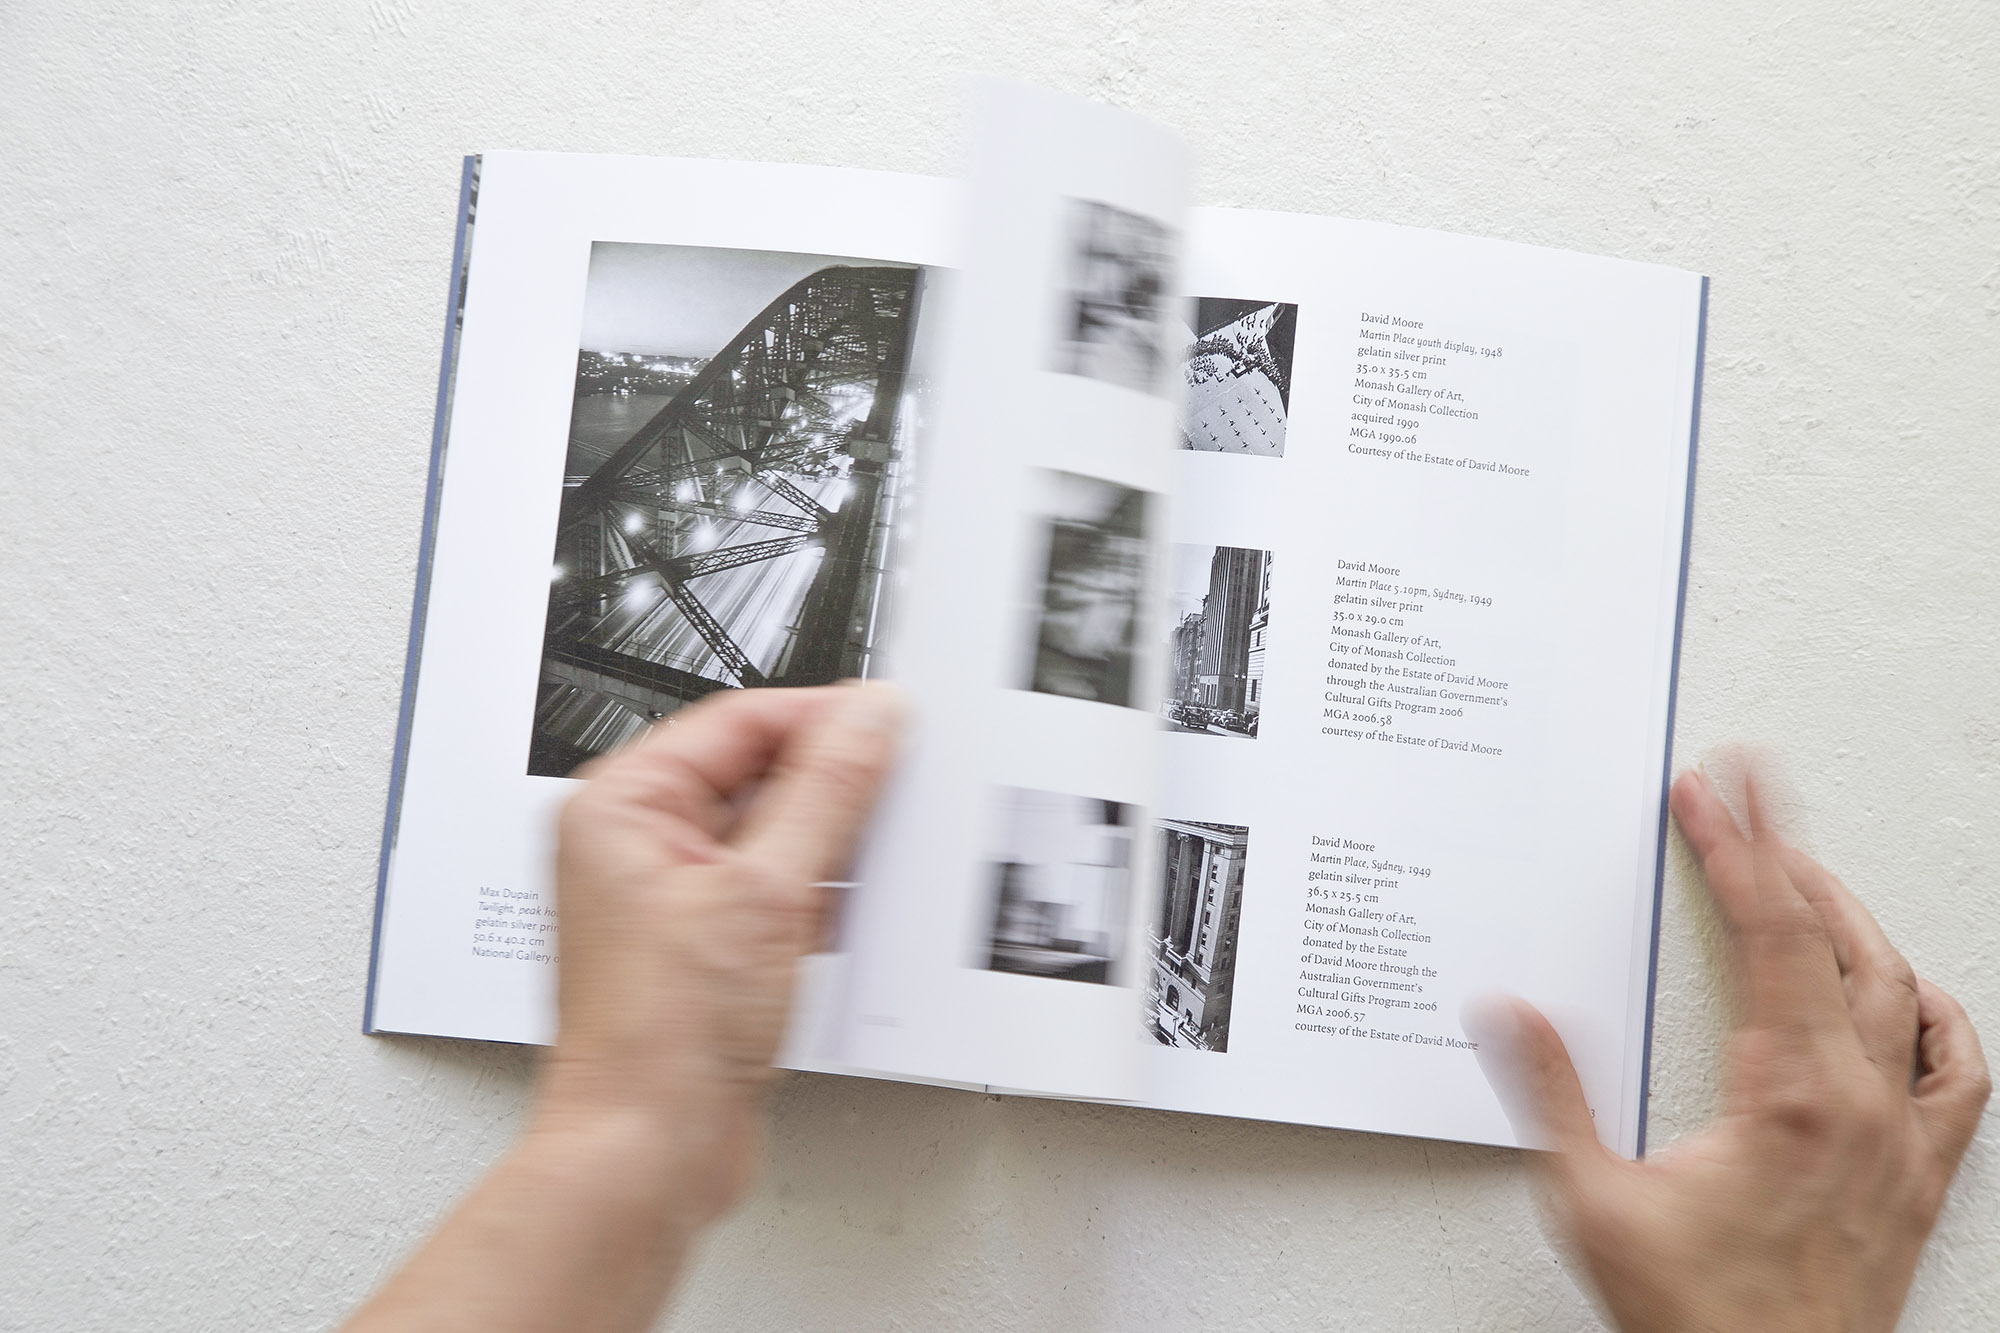 PUBLICATION /  Dreams and Imagination: Light in the Modern City, 2014 Monash Gallery of Art, 68 pp catalogue  Design and print management. Read about the design process here .